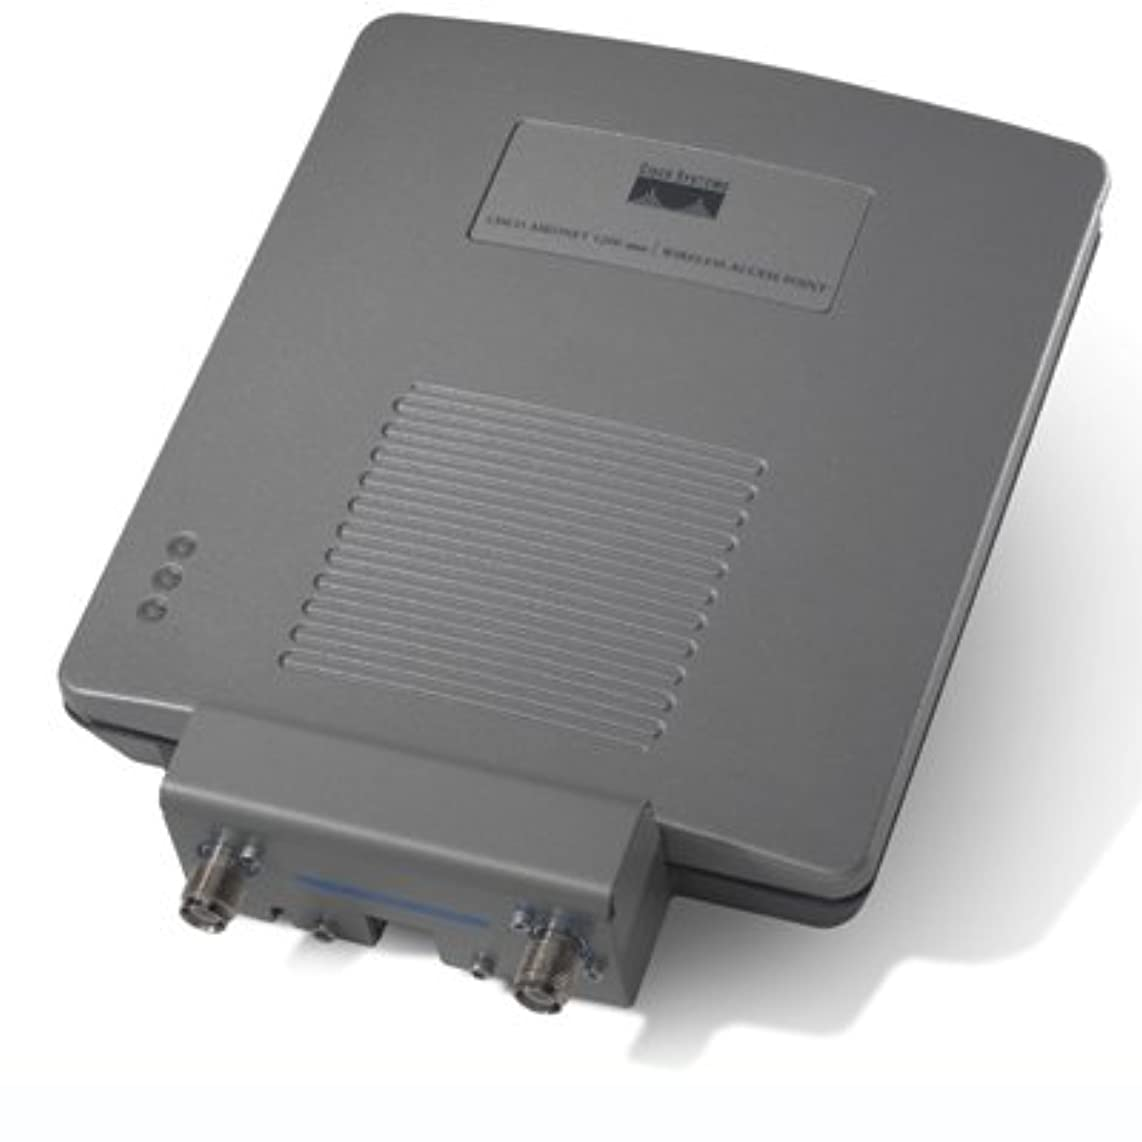 CISCO AIR-AP1231G-A-K9 Cisco Aironet 1200 802.11g Wireless Access Points/Brid...